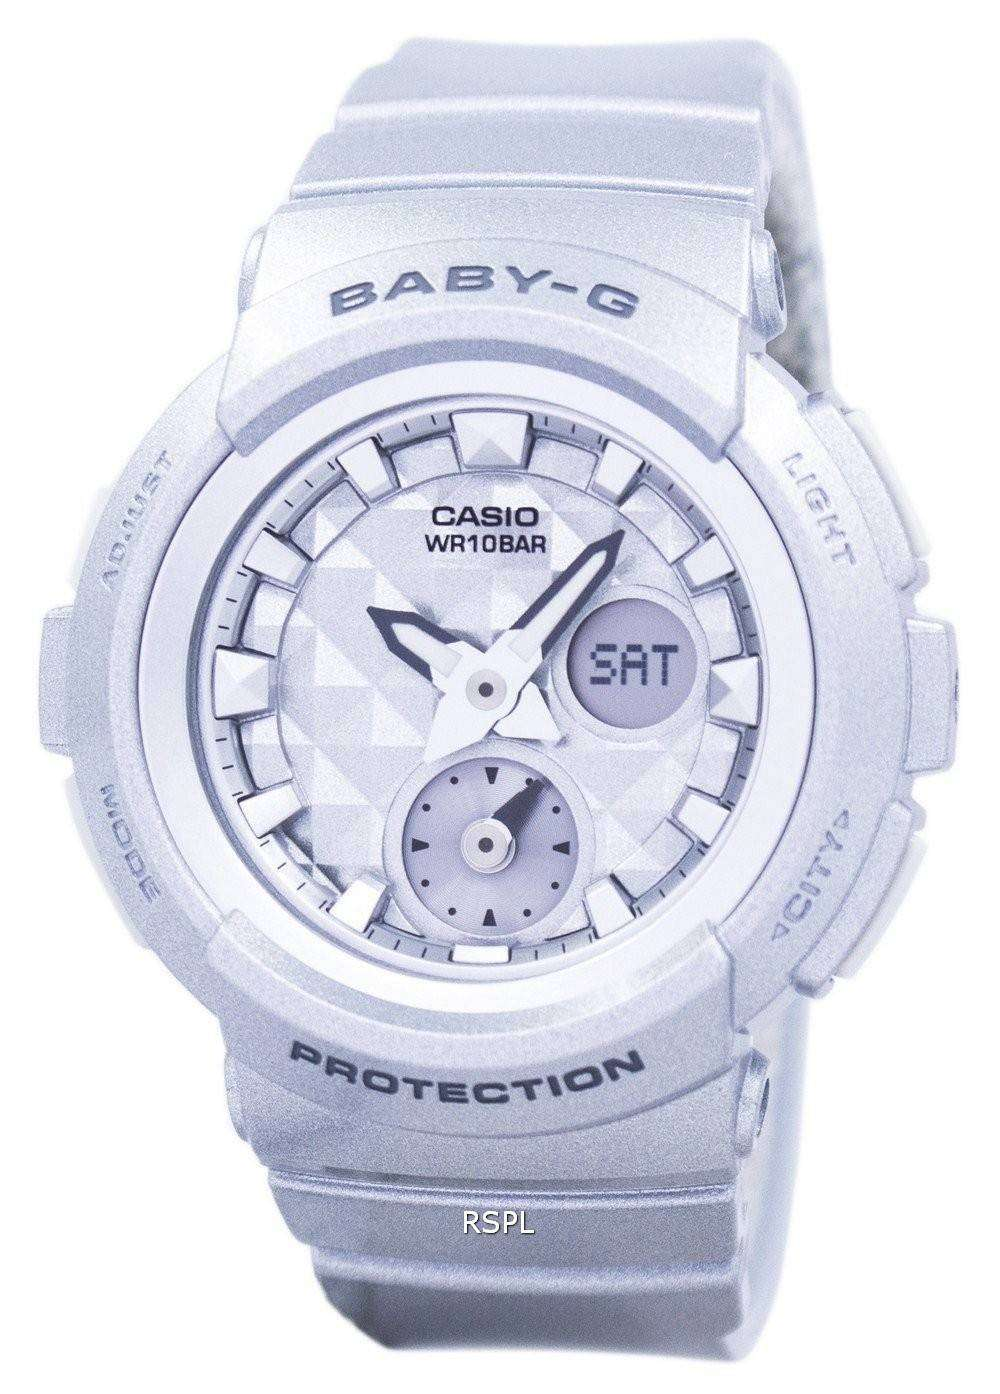 be7415a8464 Casio Baby-G Shock Resistant World Time Analog Digital BGA-195-8A Women s